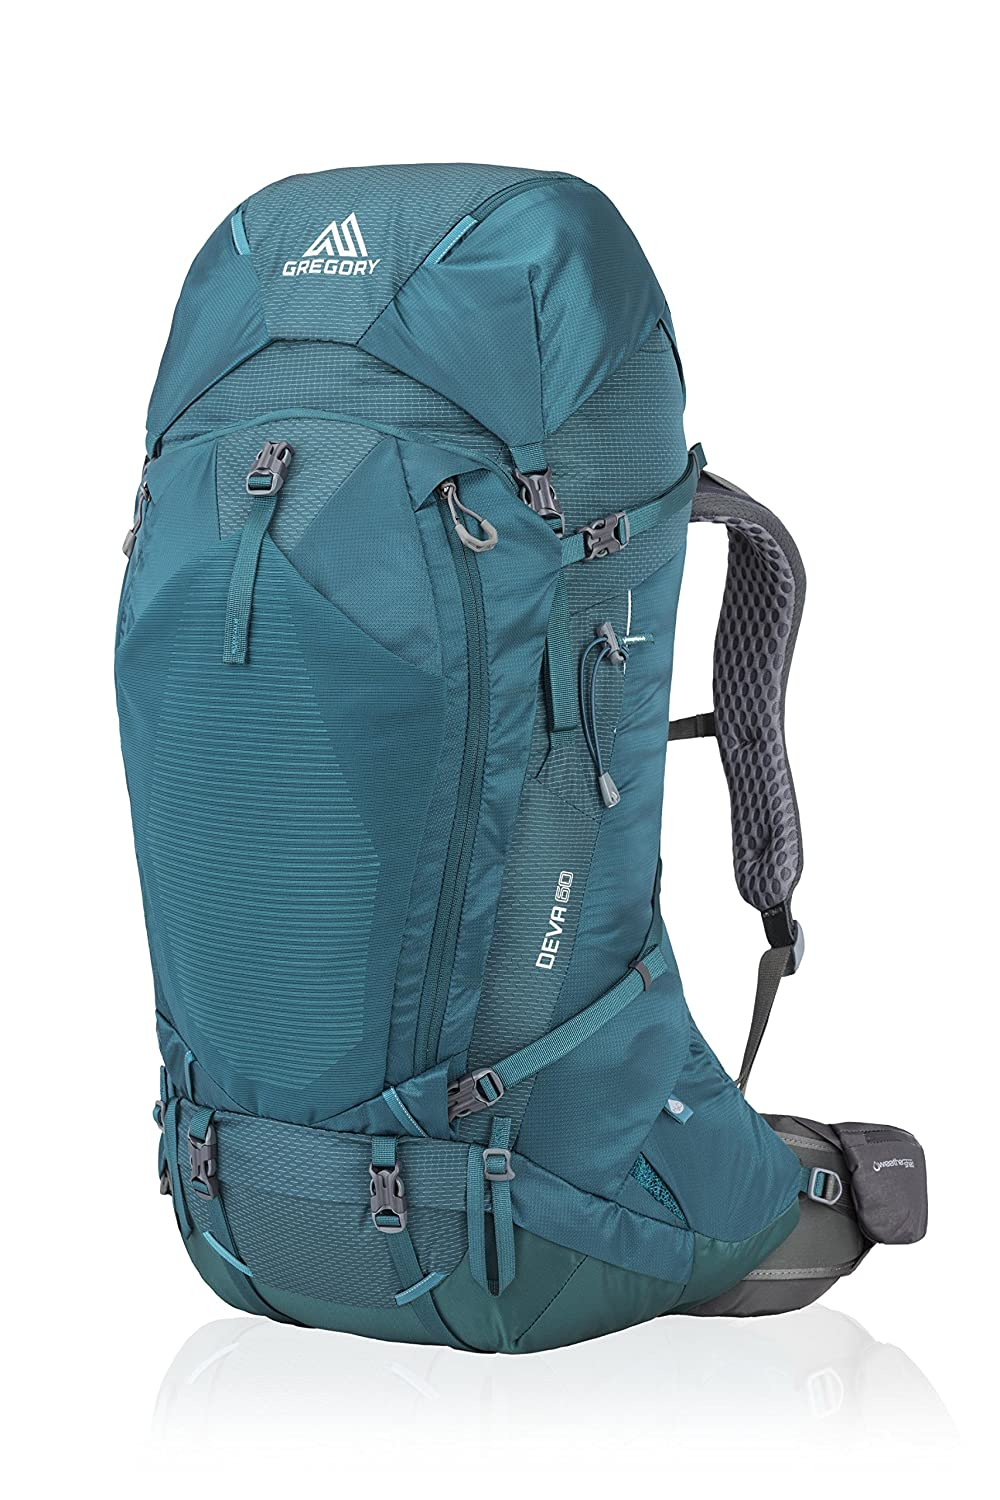 Gregory Mountain Products Women's Deva 60 Liter Backpack, Antigua Green, Extra Small B073P3RZPQ Small|Antigua Green